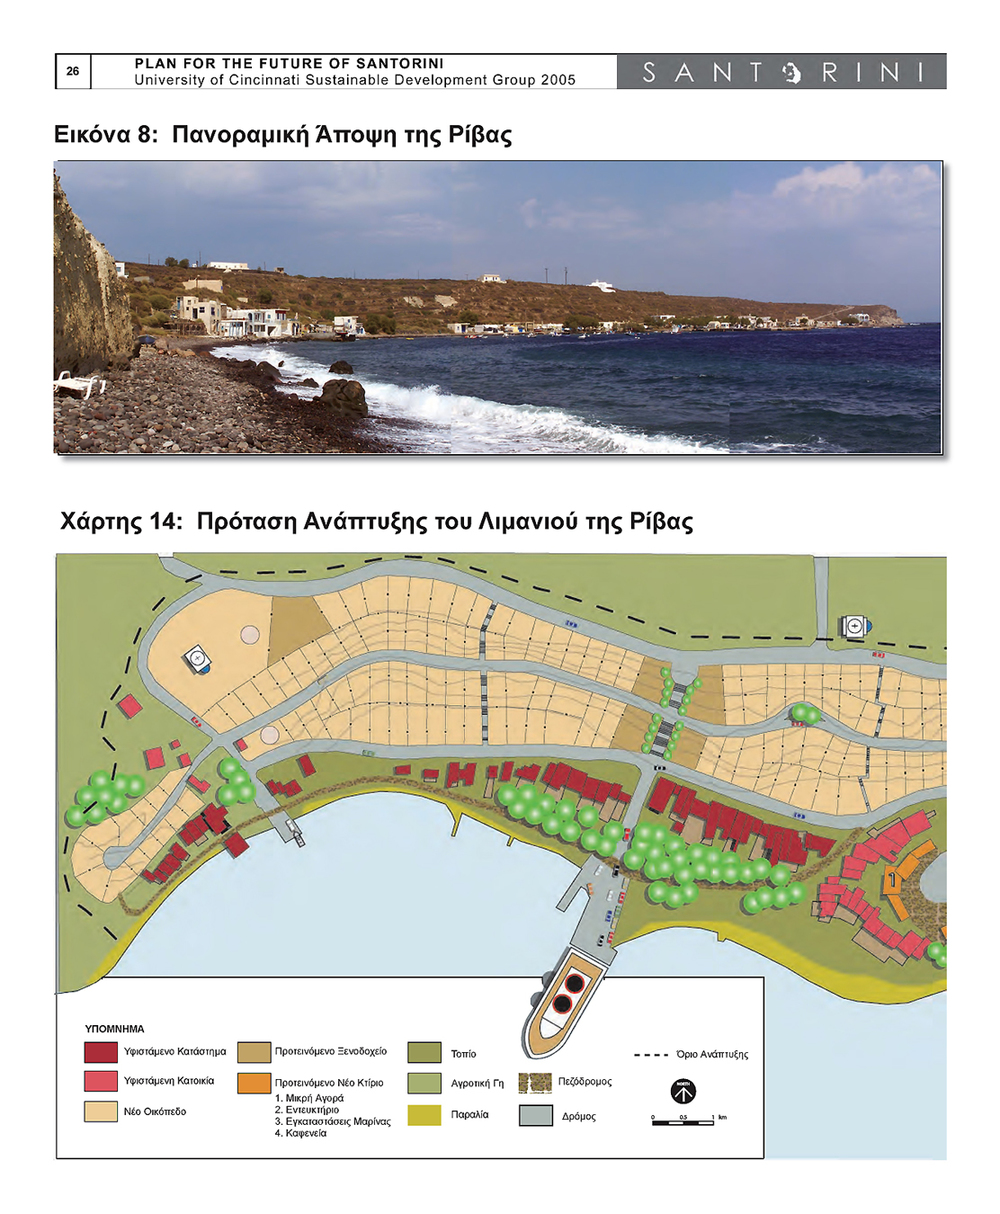 The Plan proposed more micro-scale interventions such as this consolidation of sprawling development into much more compact and walkable projects that are sensitive to the ecology of the hills and bluffs of Santorini.  Source:  University of Cincinnati Sustainable Development Group.